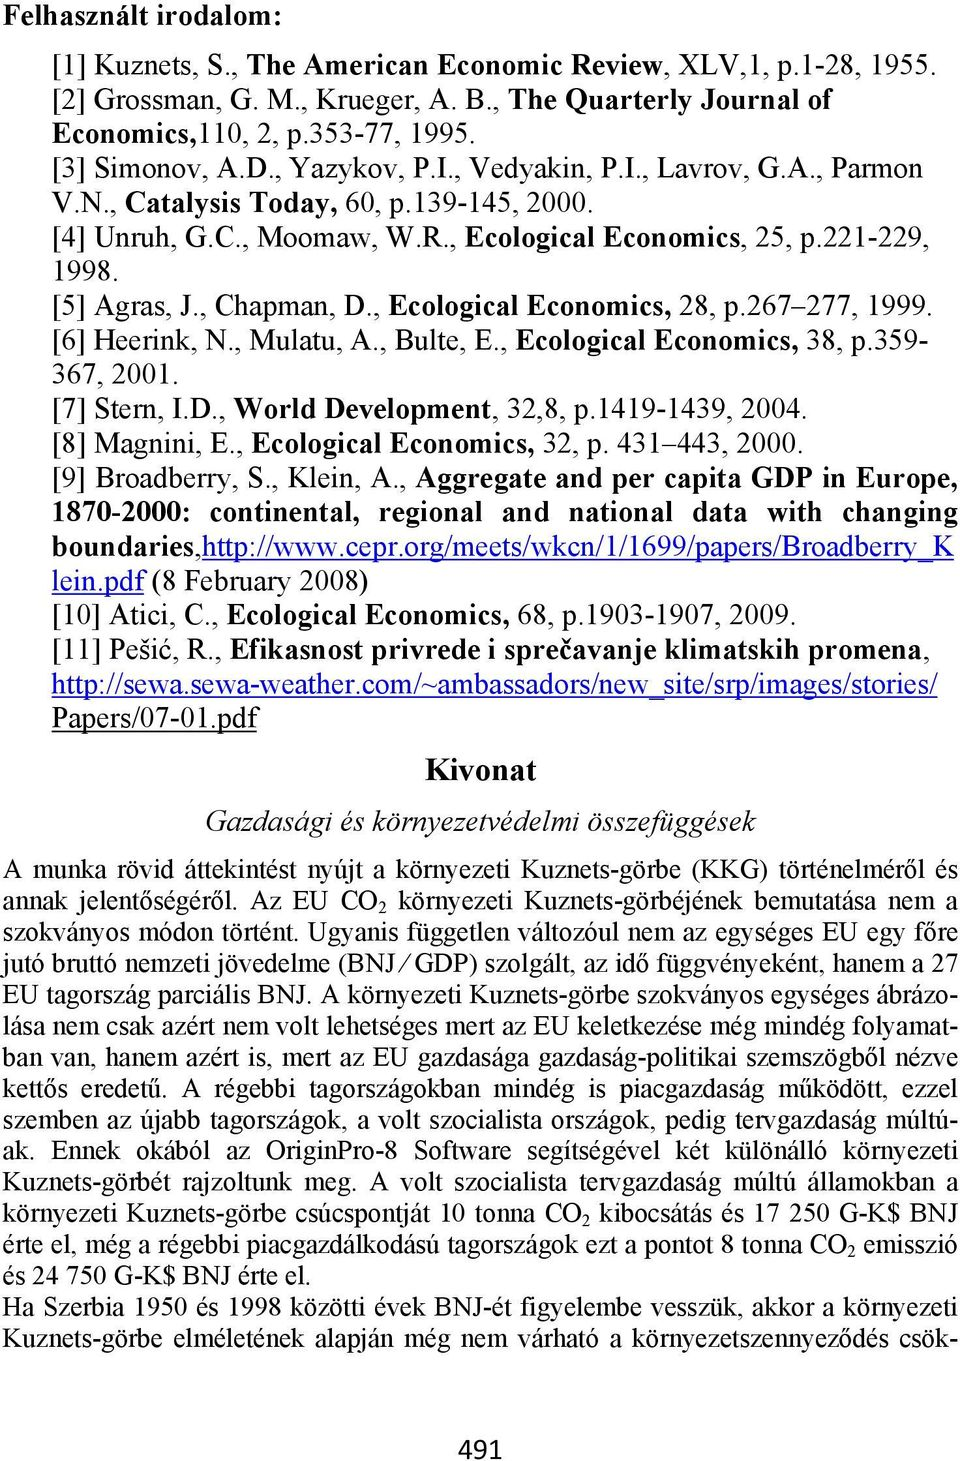 [5] Agras, J., Chapman, D., Ecological Economics, 28, p.267 277, 1999. [6] Heerink, N., Mulatu, A., Bulte, E., Ecological Economics, 38, p.359-367, 2001. [7] Stern, I.D., World Development, 32,8, p.